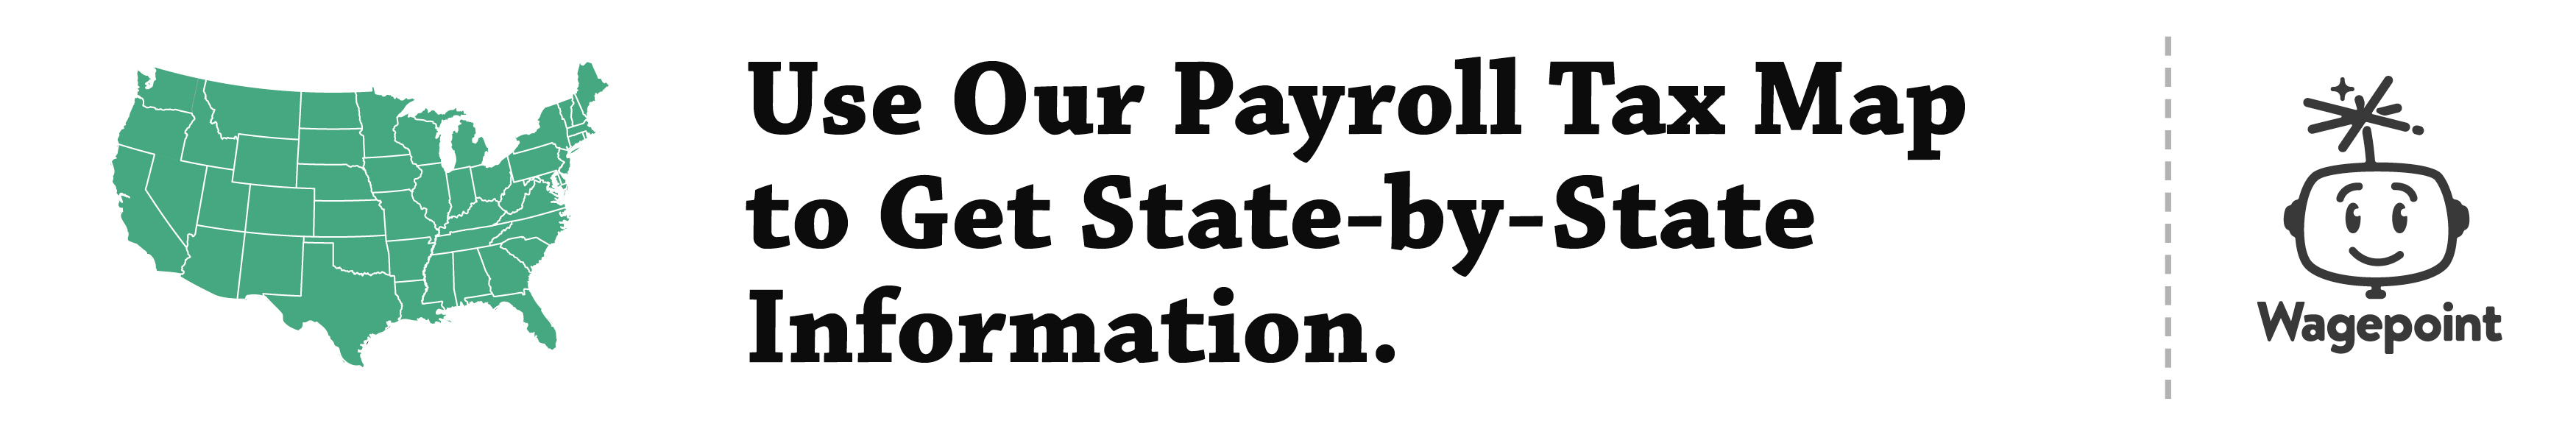 wagepoint payroll tax map banner